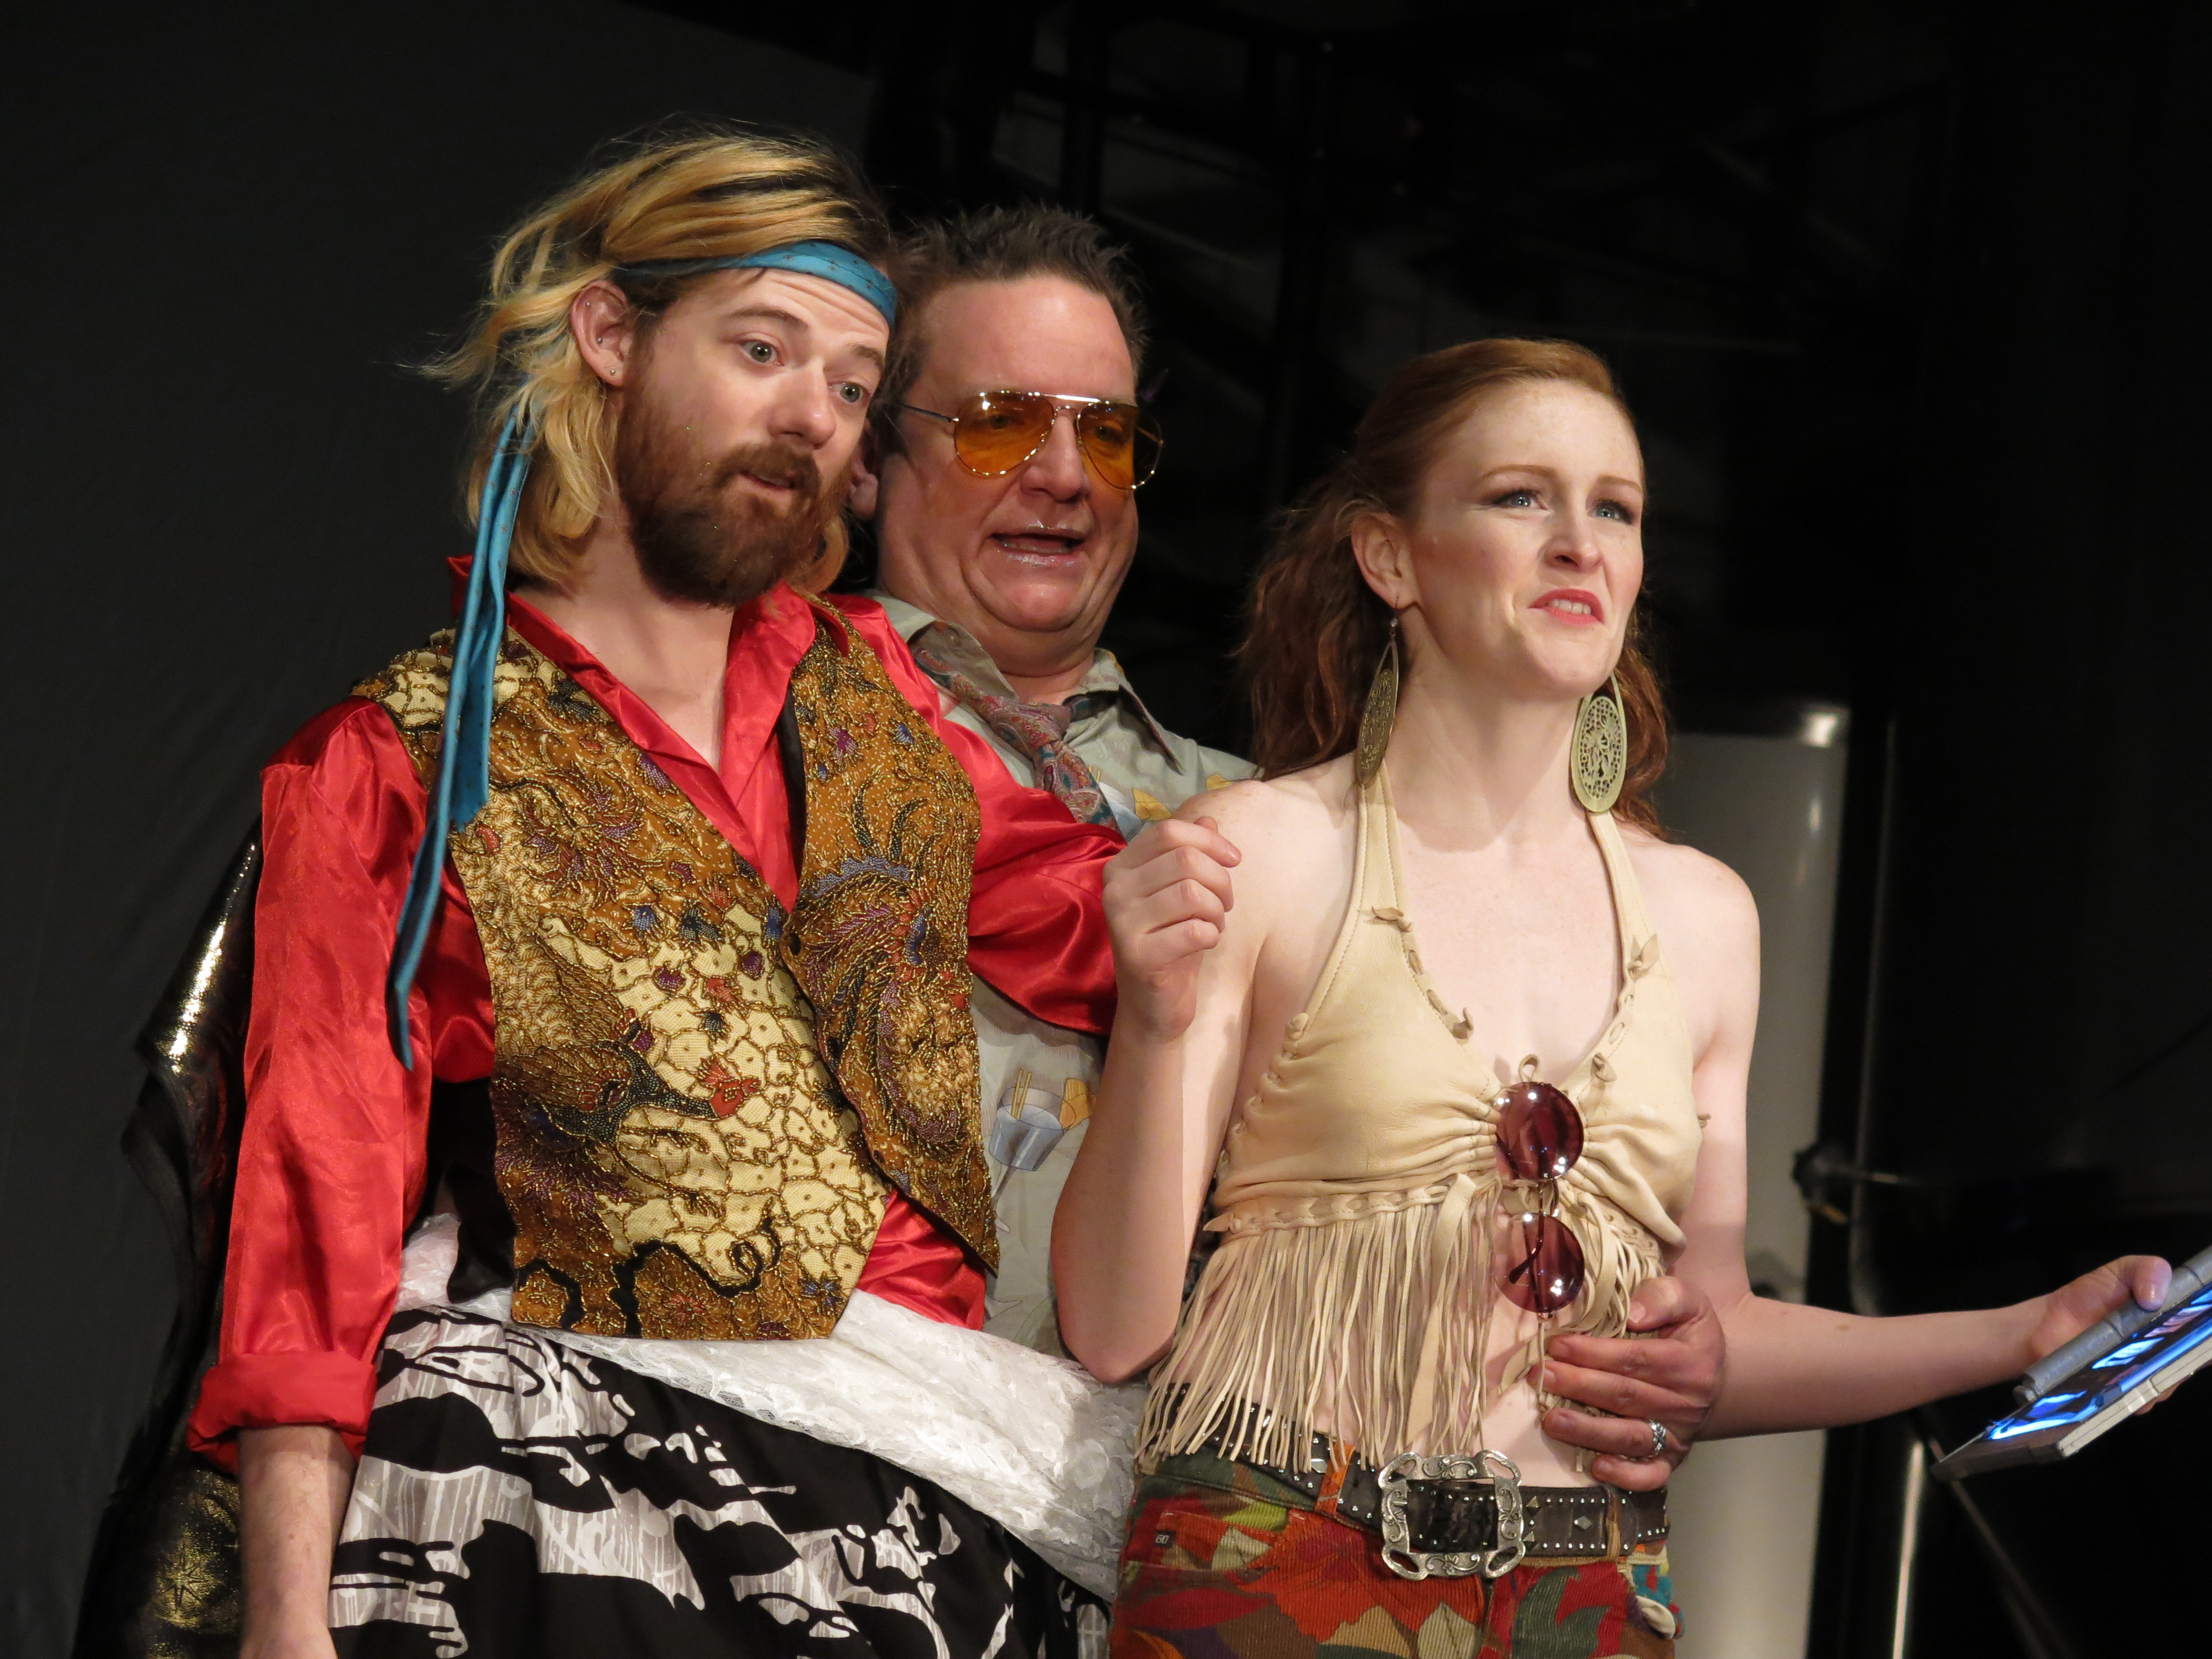 BWW Review: COTU Hits the Road With a Mind-Boggling HITCHHIKER'S GUIDE